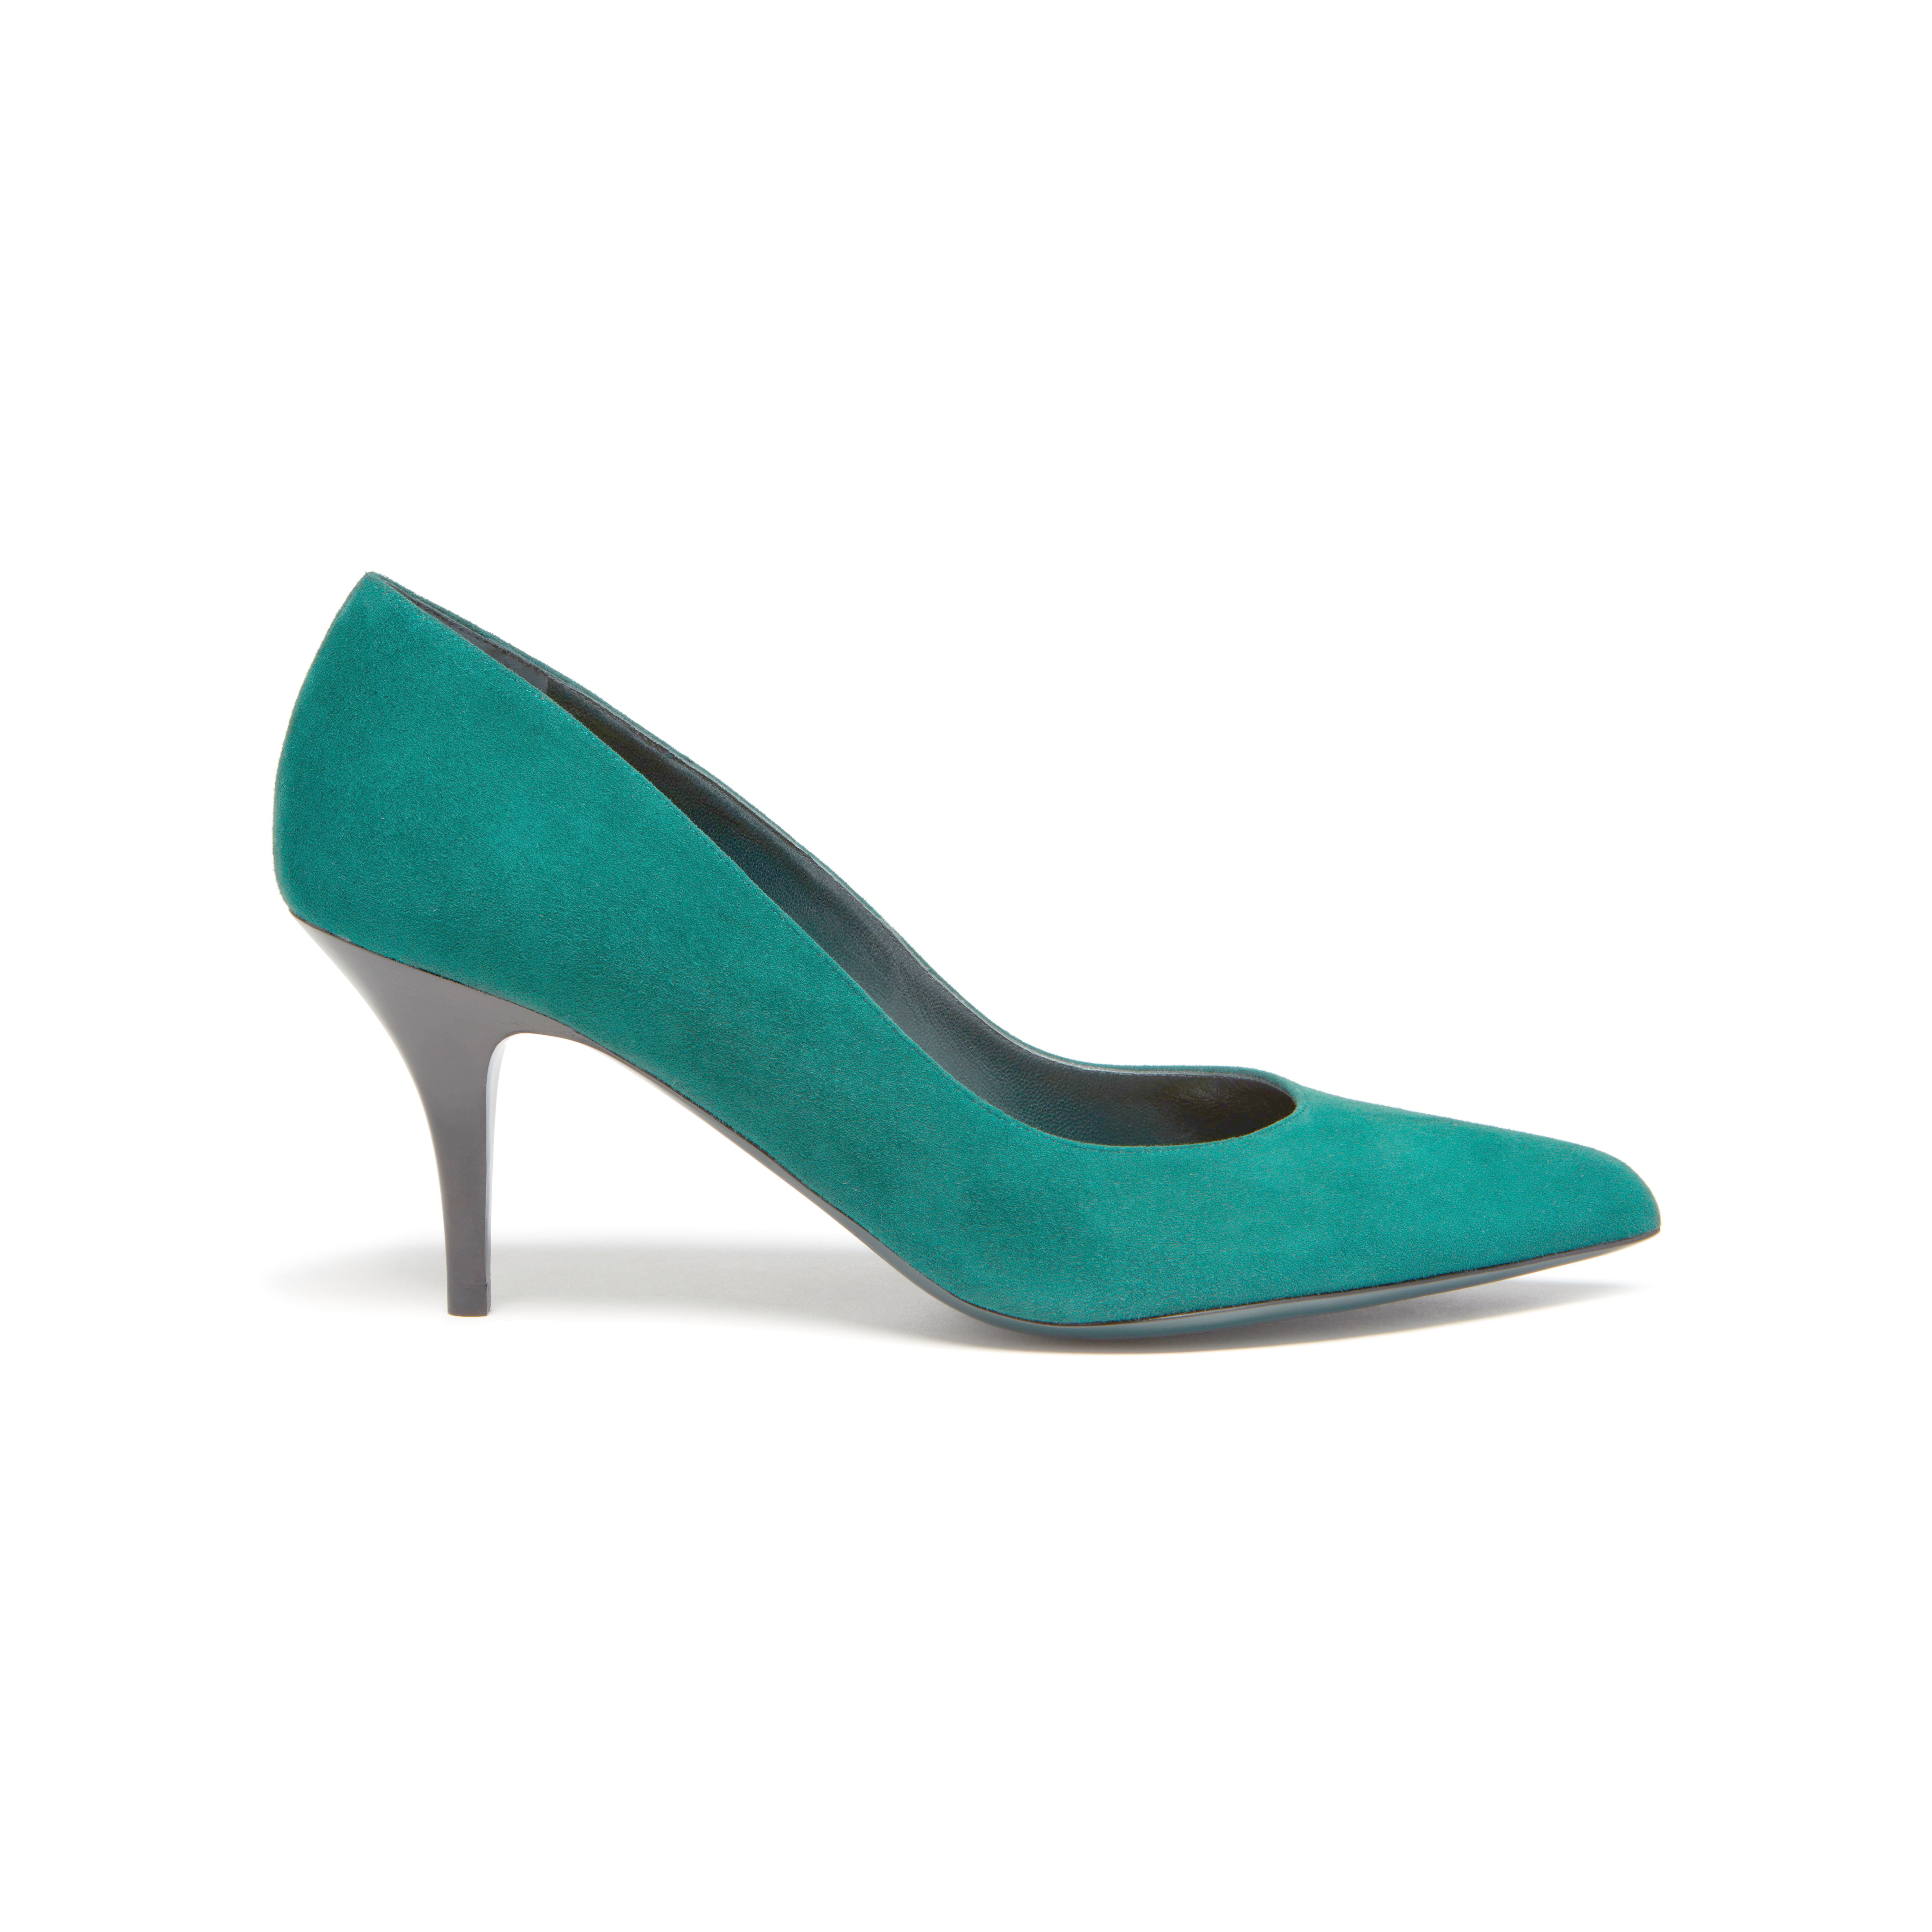 Mulberry Pointy Pump in Teal (green)